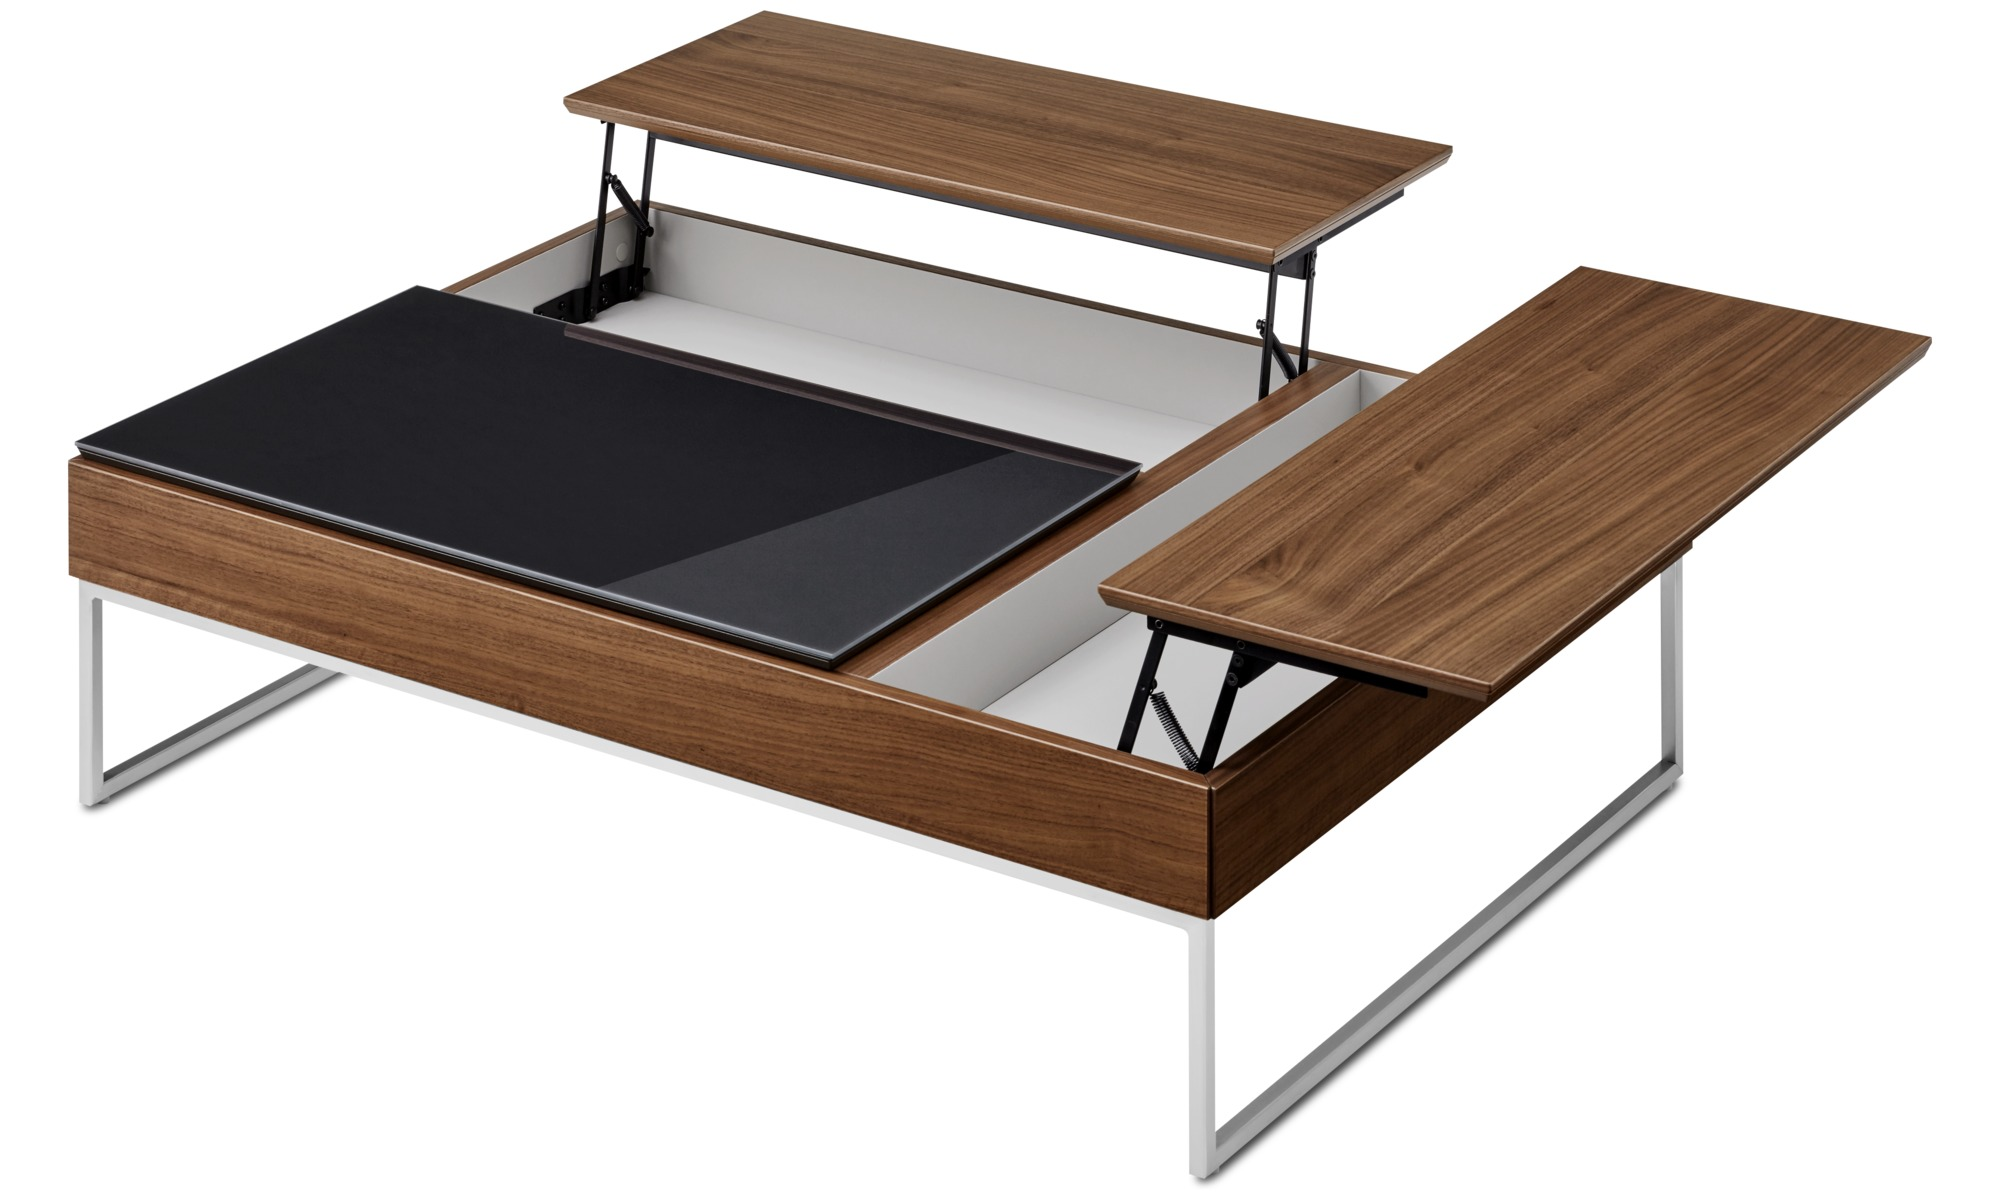 ... Coffee tables - Chiva functional coffee table with storage - square -  Brown - Walnut